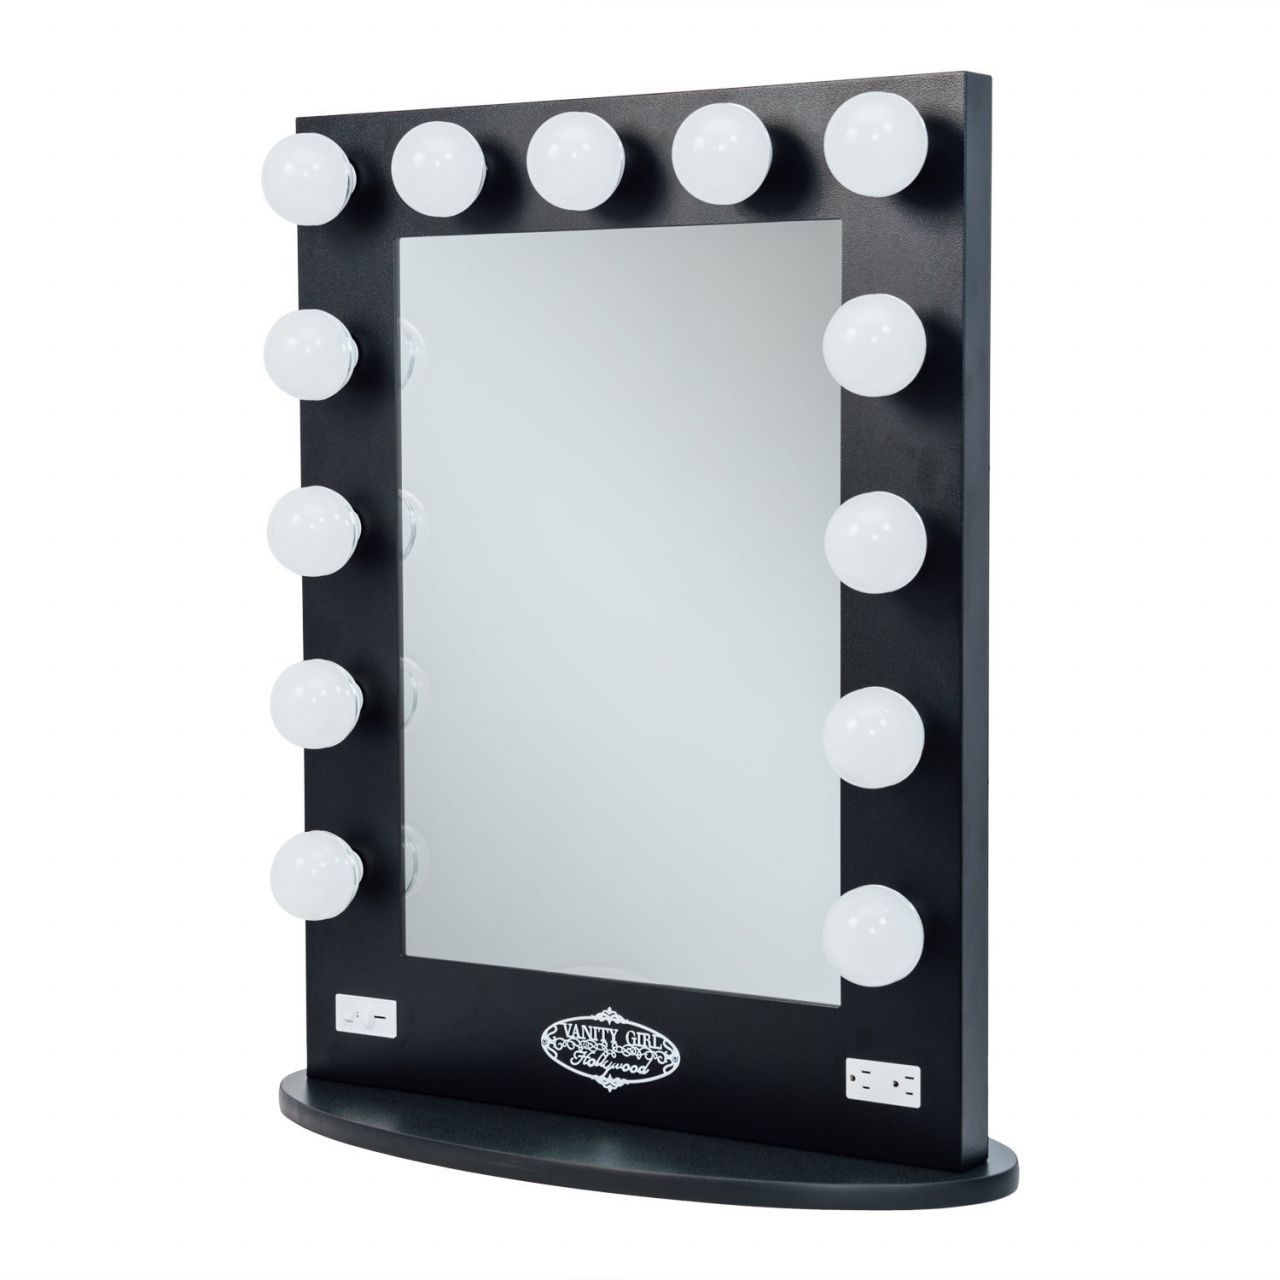 Table Top Lighted Vanity Mirror Home Office Furniture Images Check